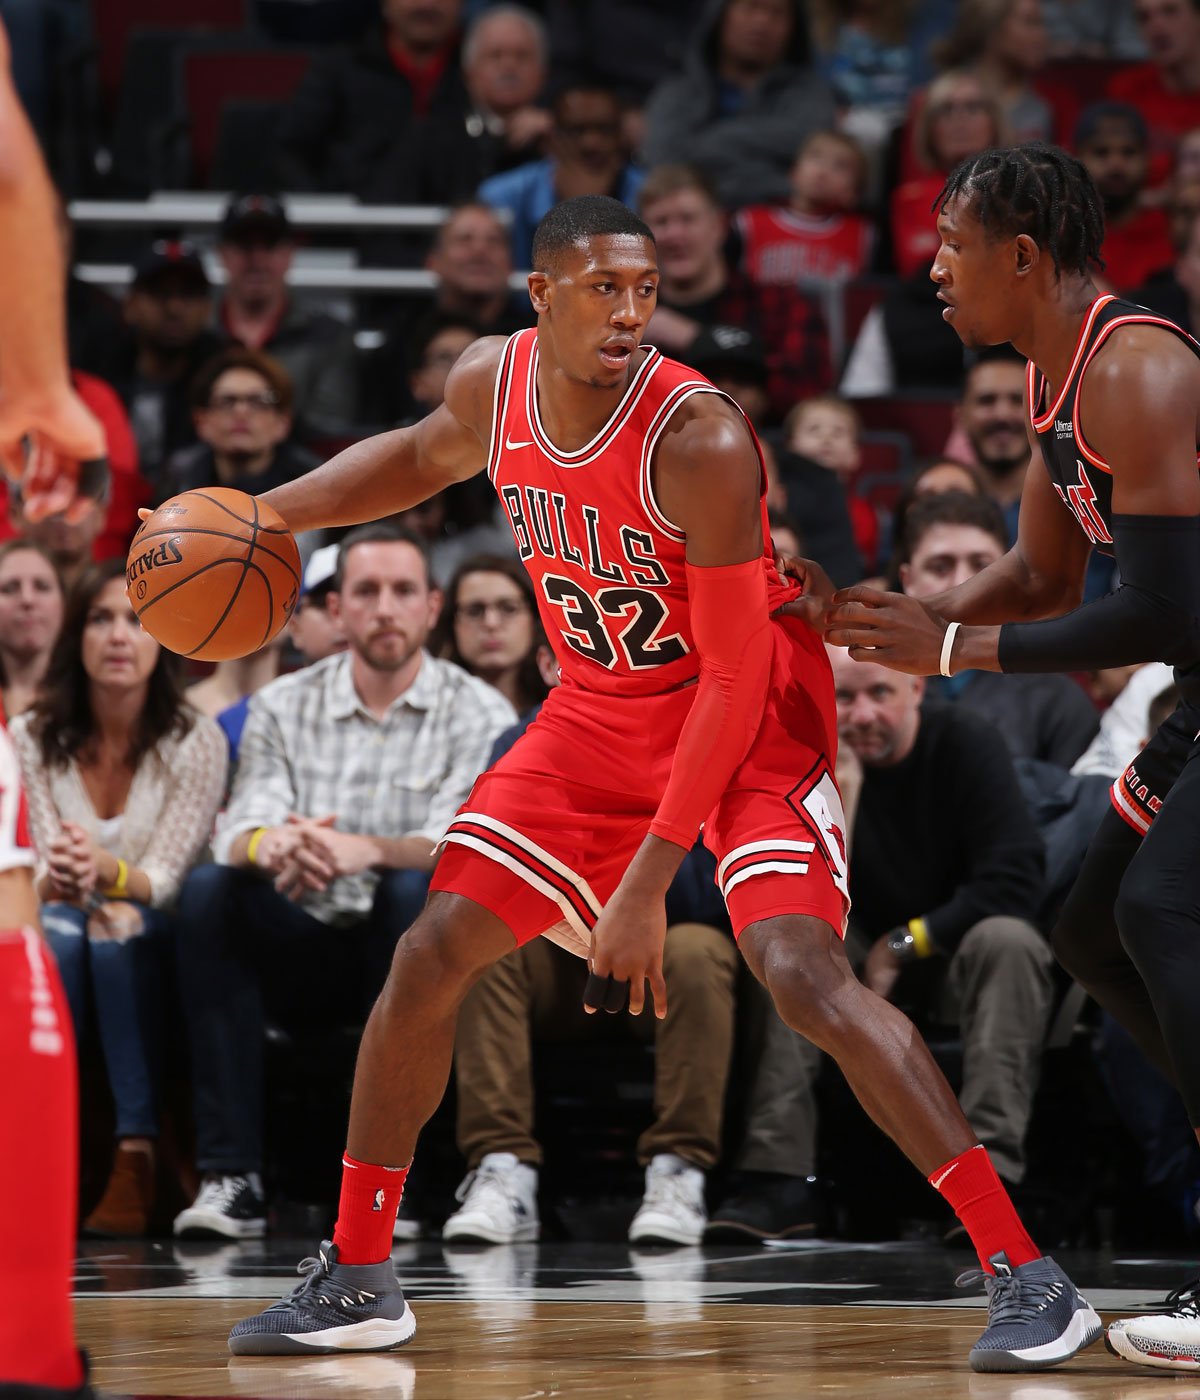 Kris Dunn #32 of the Chicago Bulls handles the ball against the Miami Heat on November 26, 2017 at the United Center in Chicago, Illinois.